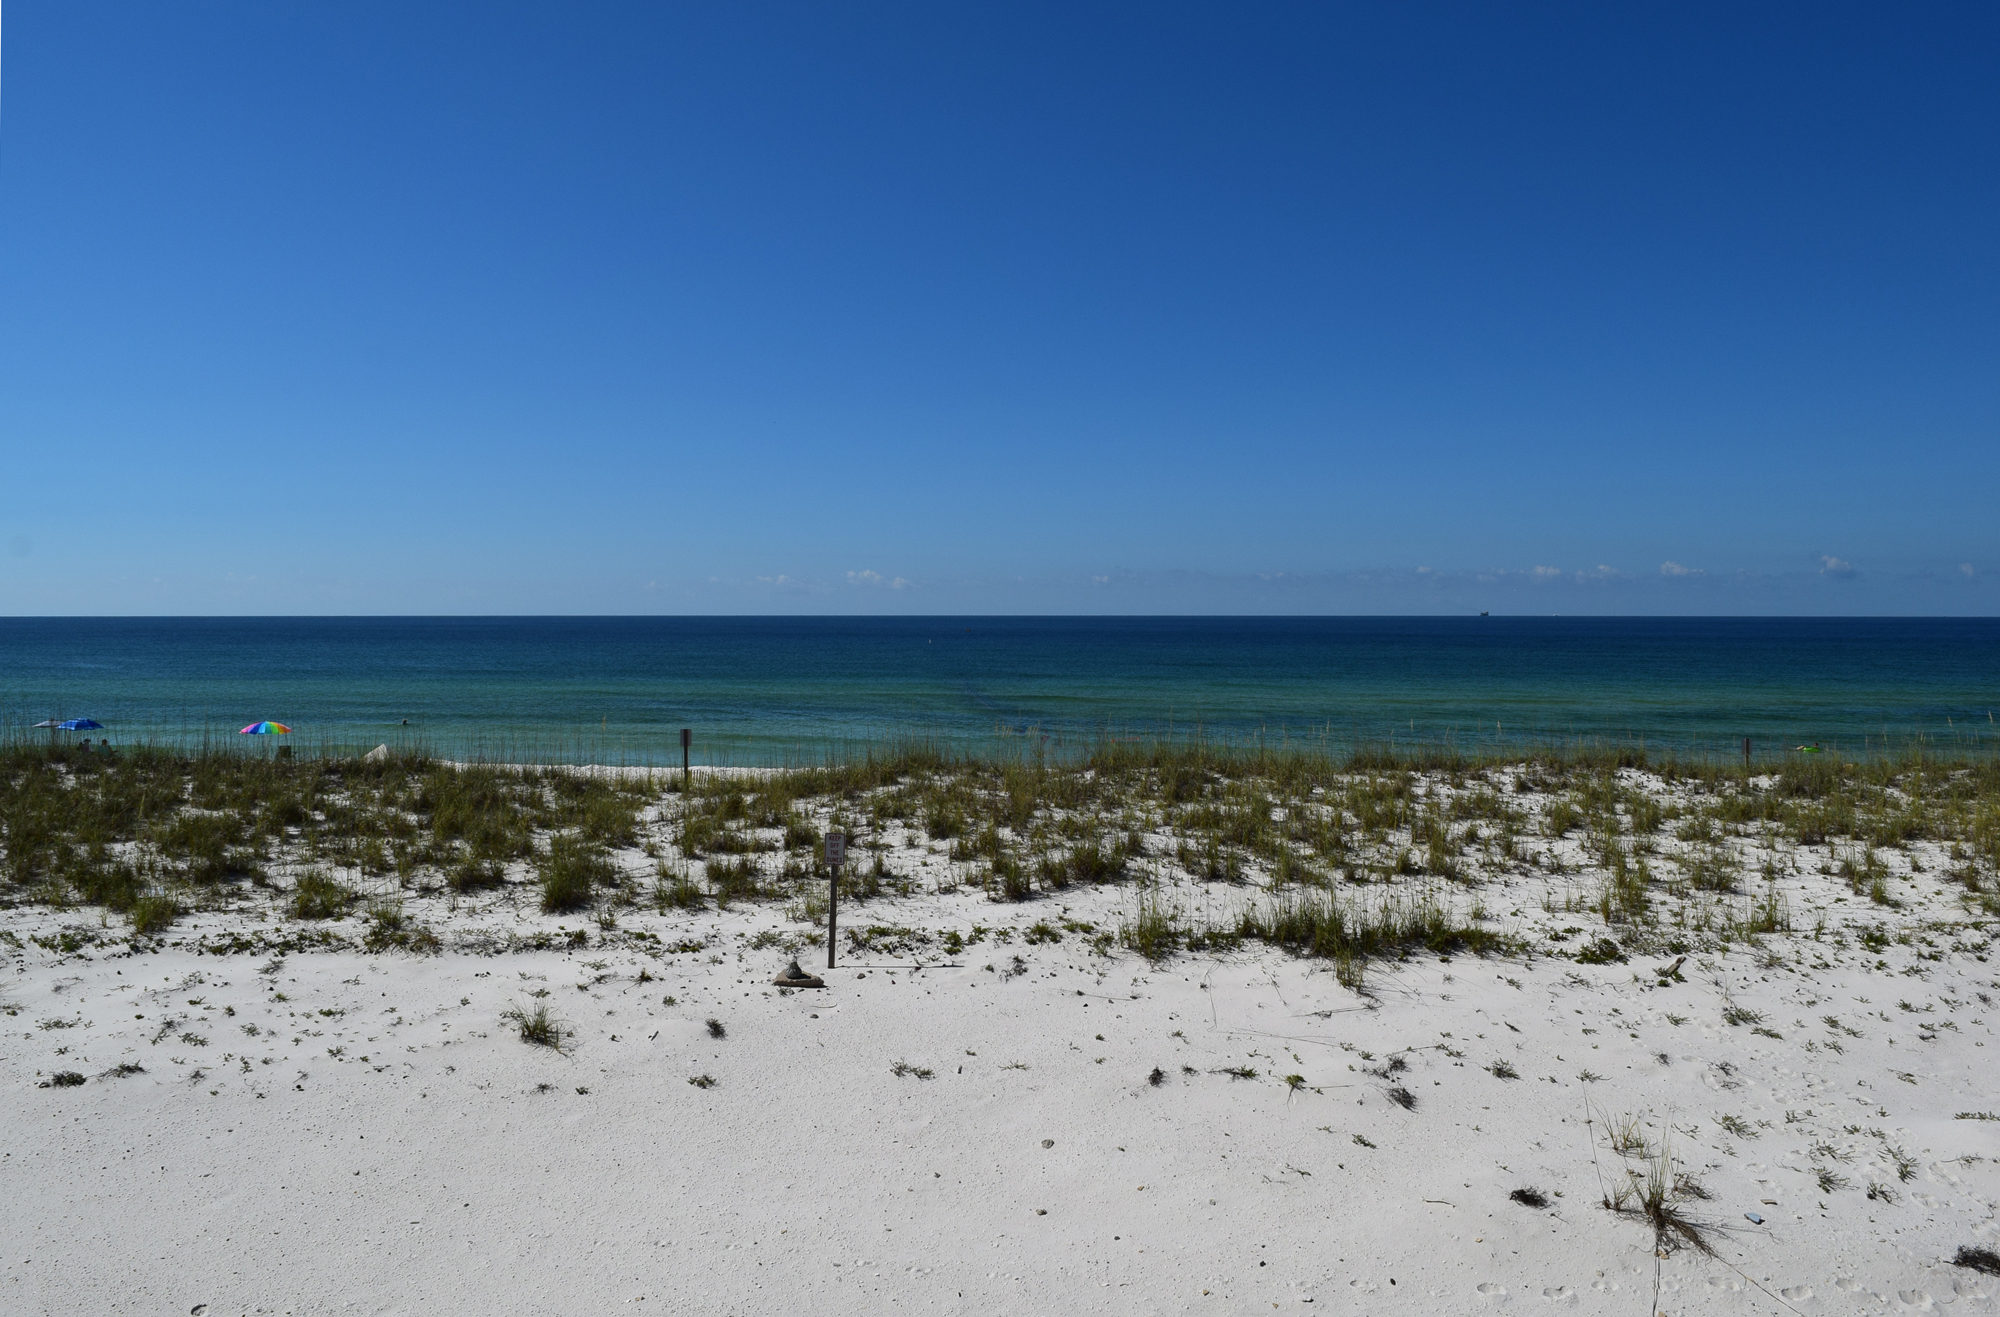 Regency Cabanas #B6 Condo rental in Regency Cabanas Pensacola Beach in Pensacola Beach Florida - #25